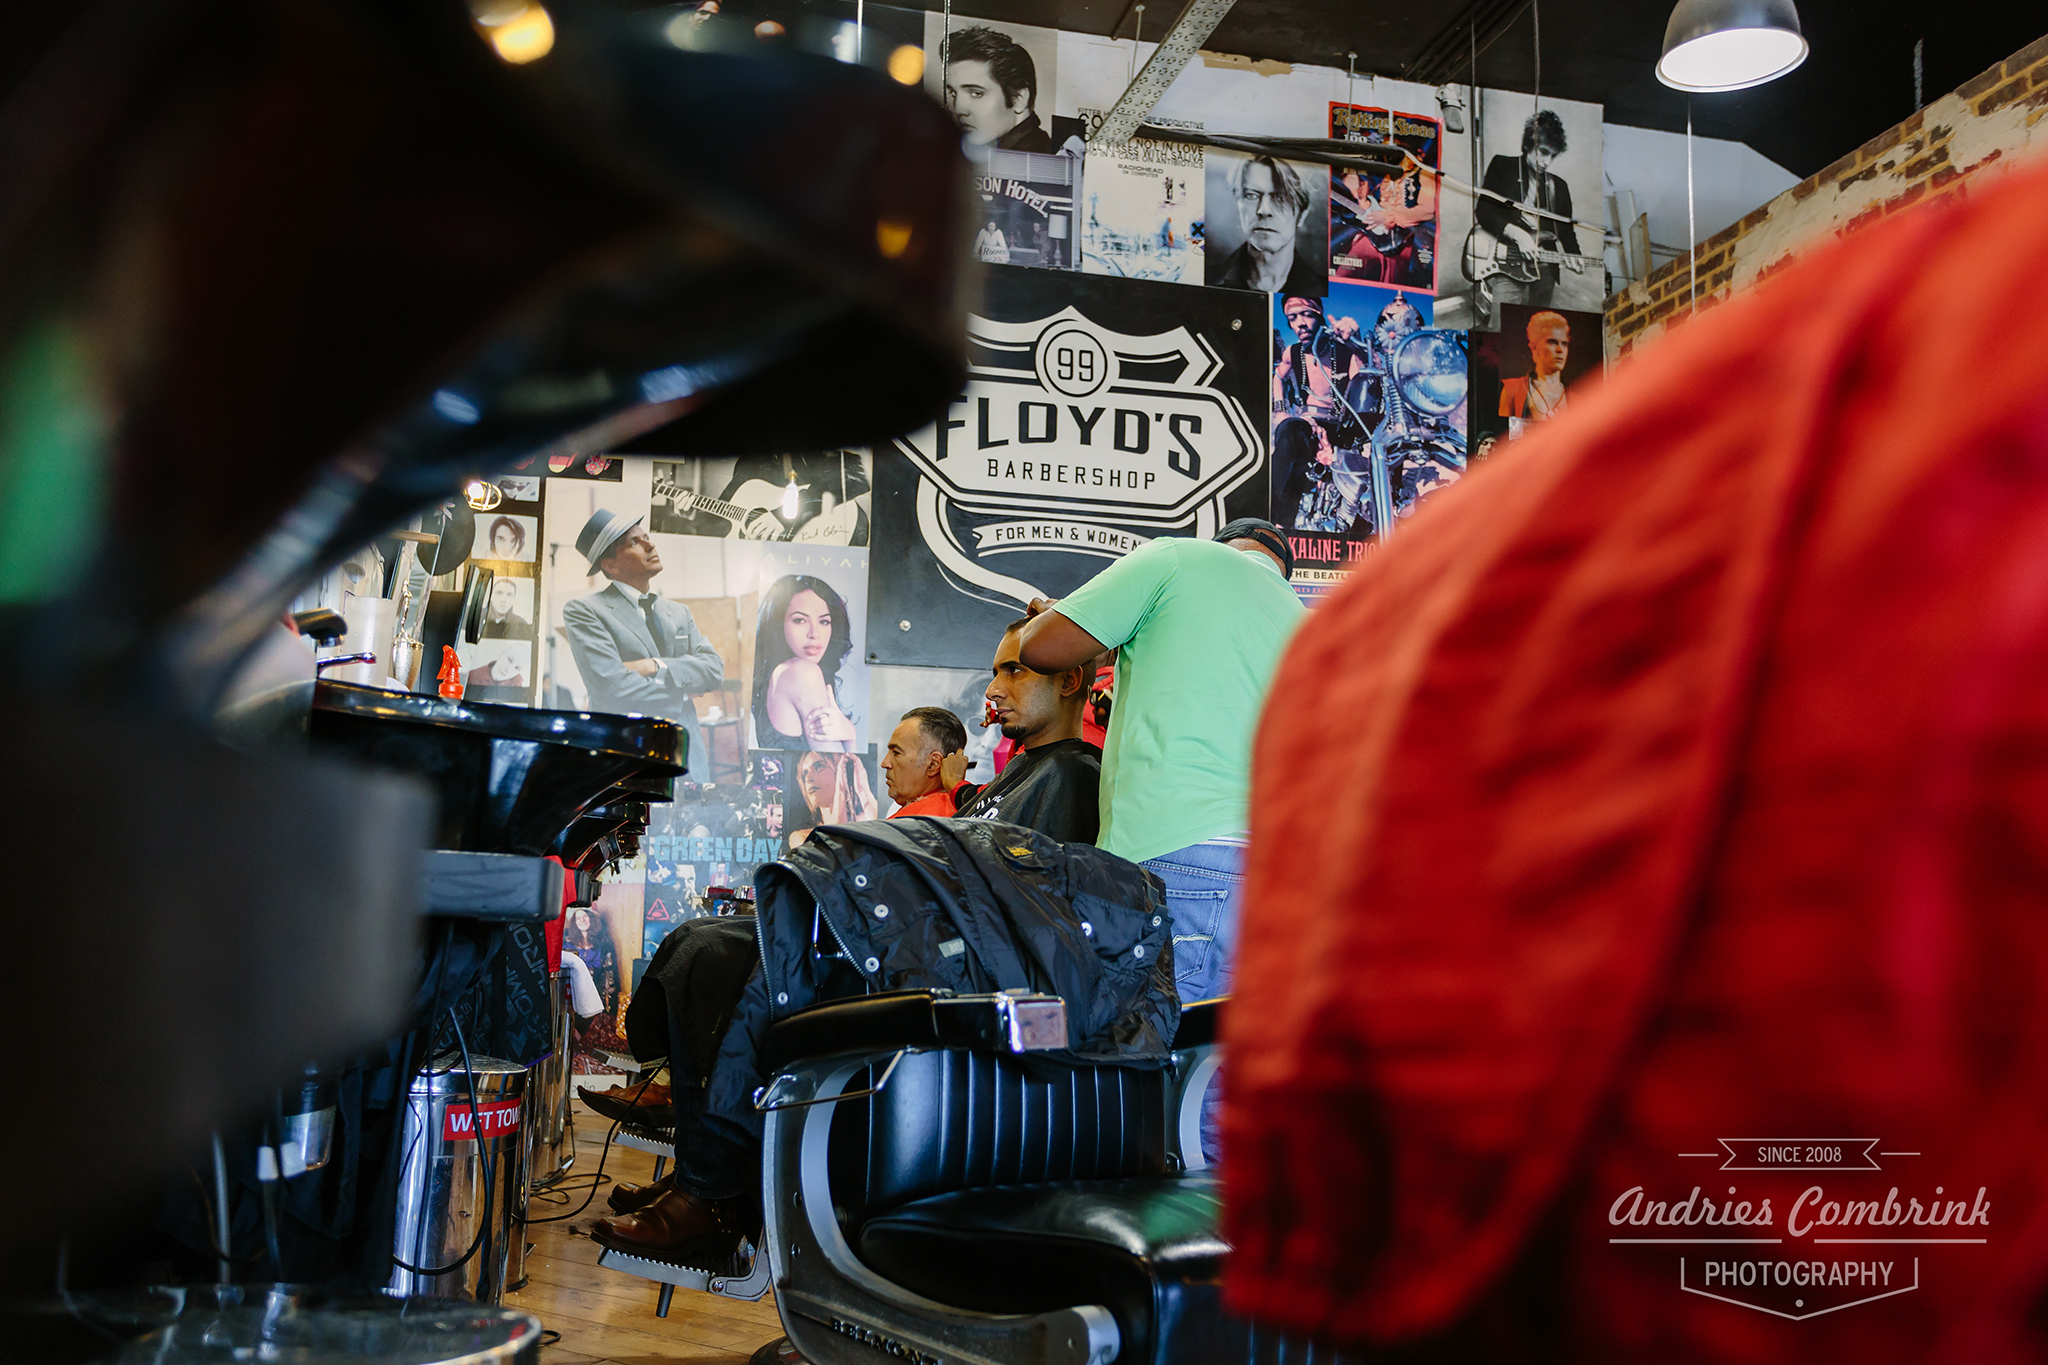 floyd's+barber+shop (5)